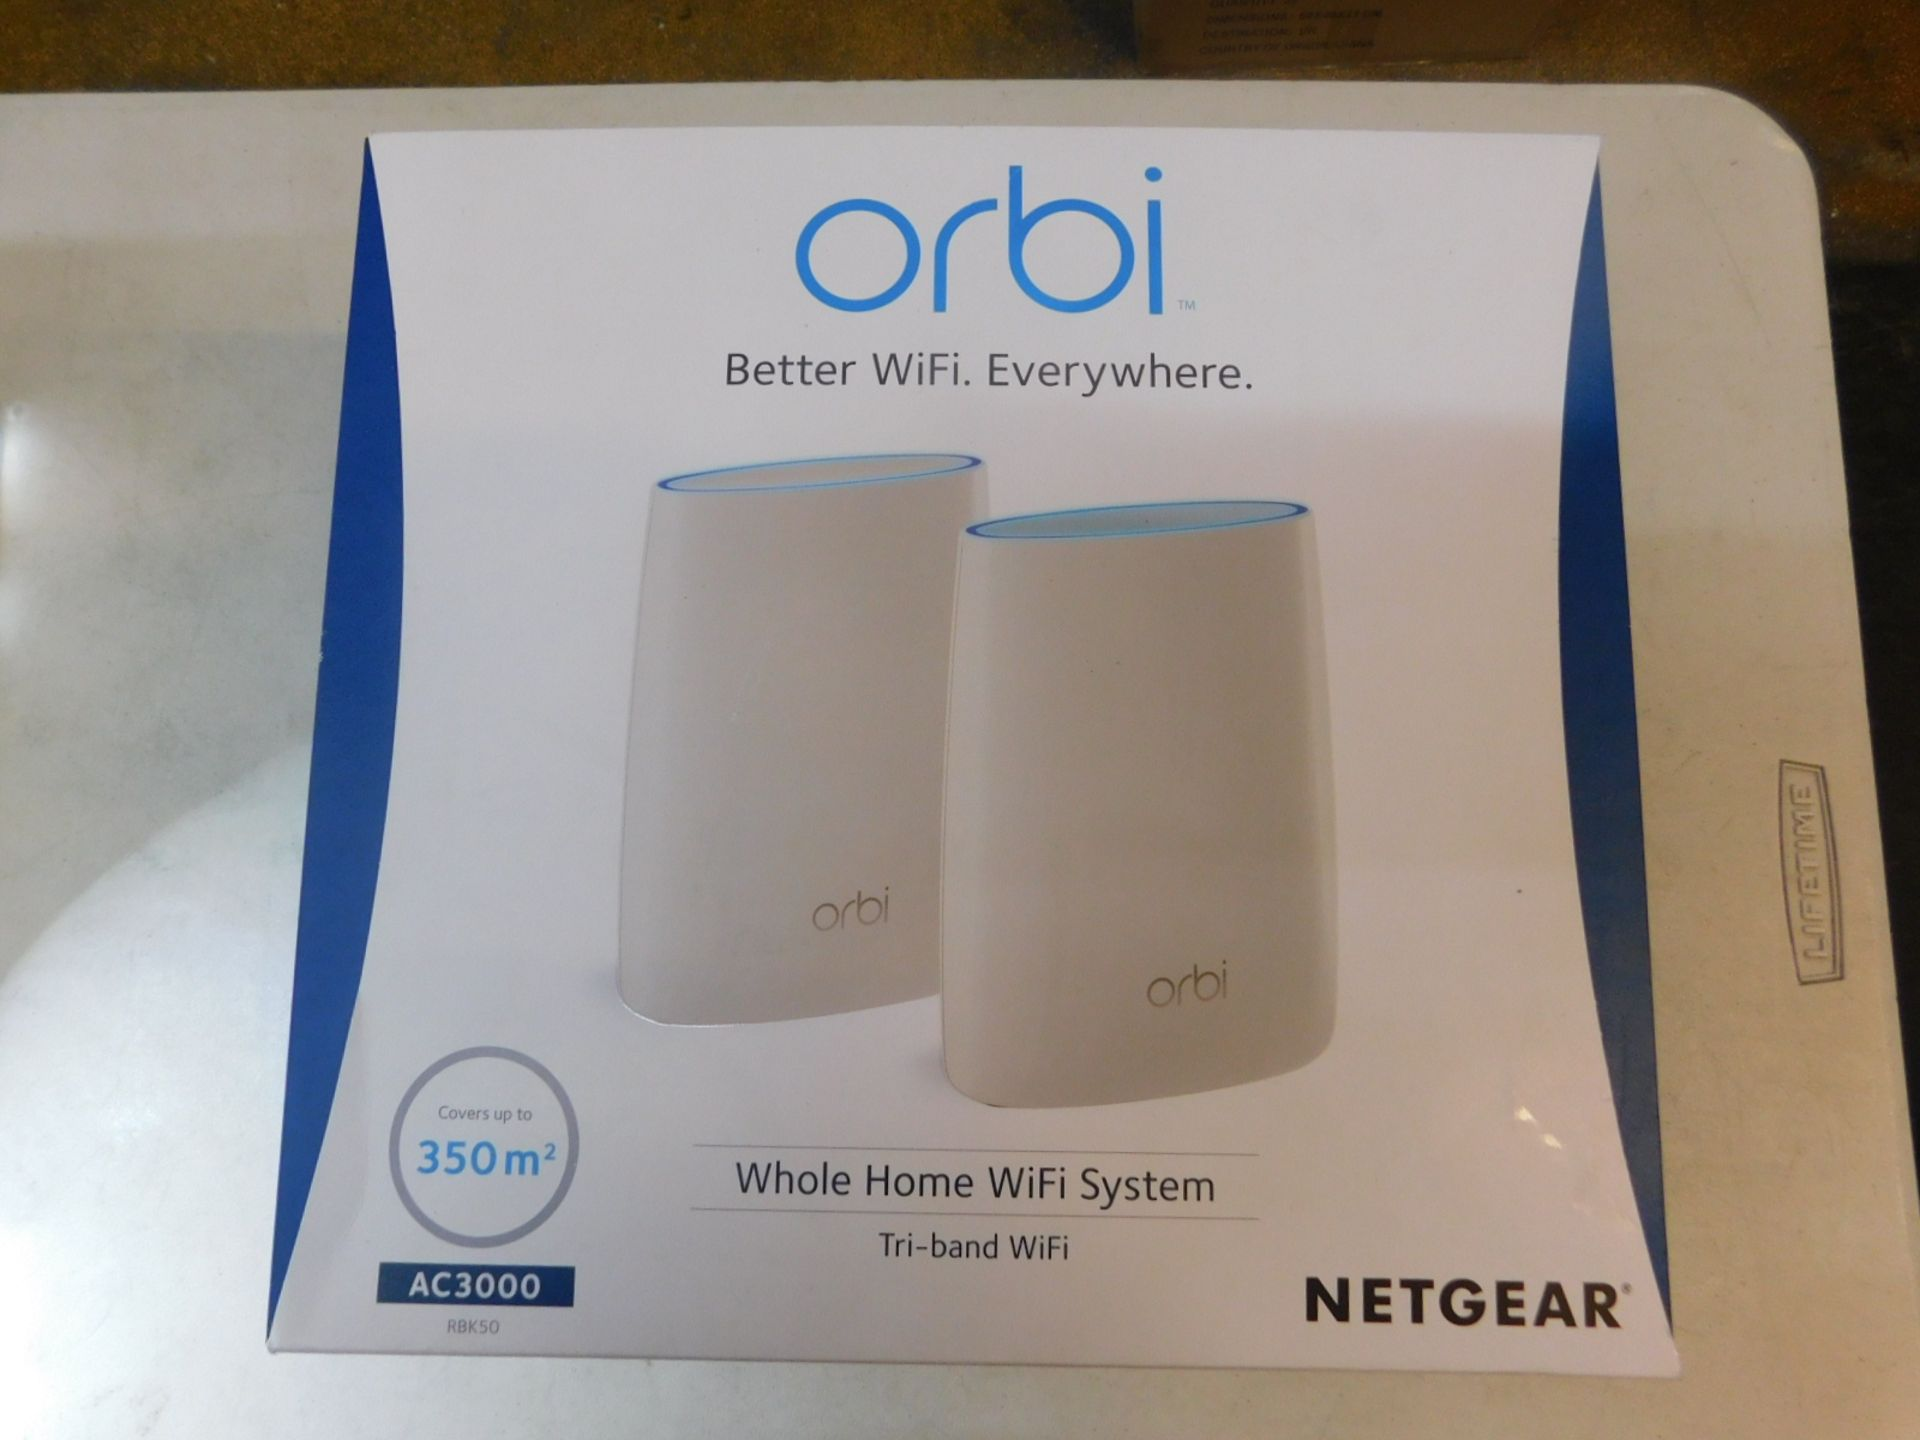 1 BOXED NETGEAR ORBI WHOLE HOME WIFI SYSTEM MODEL AC3000 COVERS UPTO 350 METERS SQUARED RRP £349